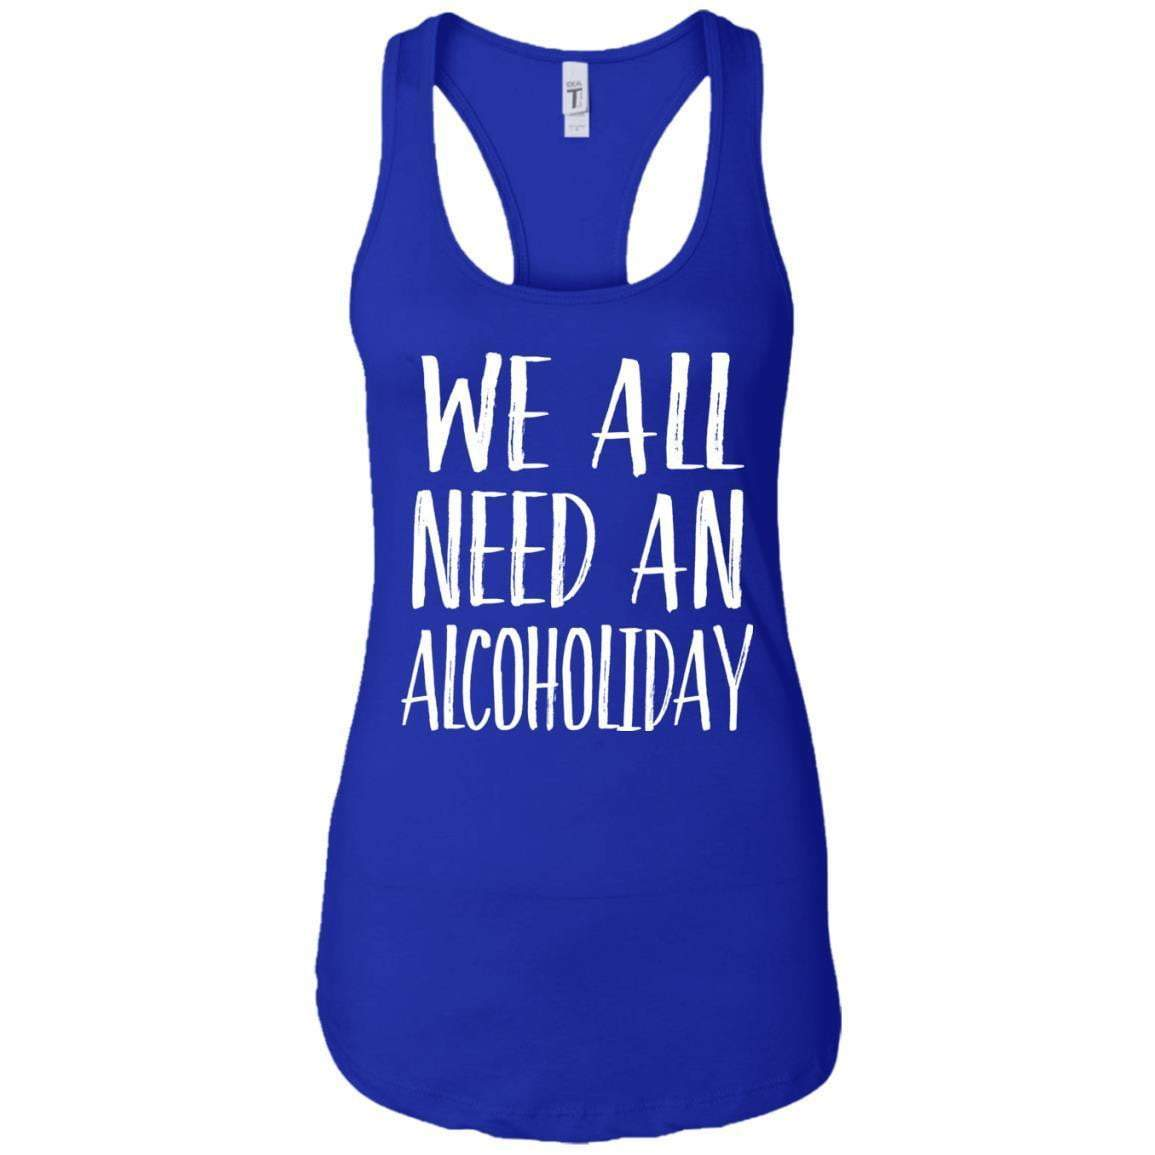 Alcoholiday Women's Racerback Tank